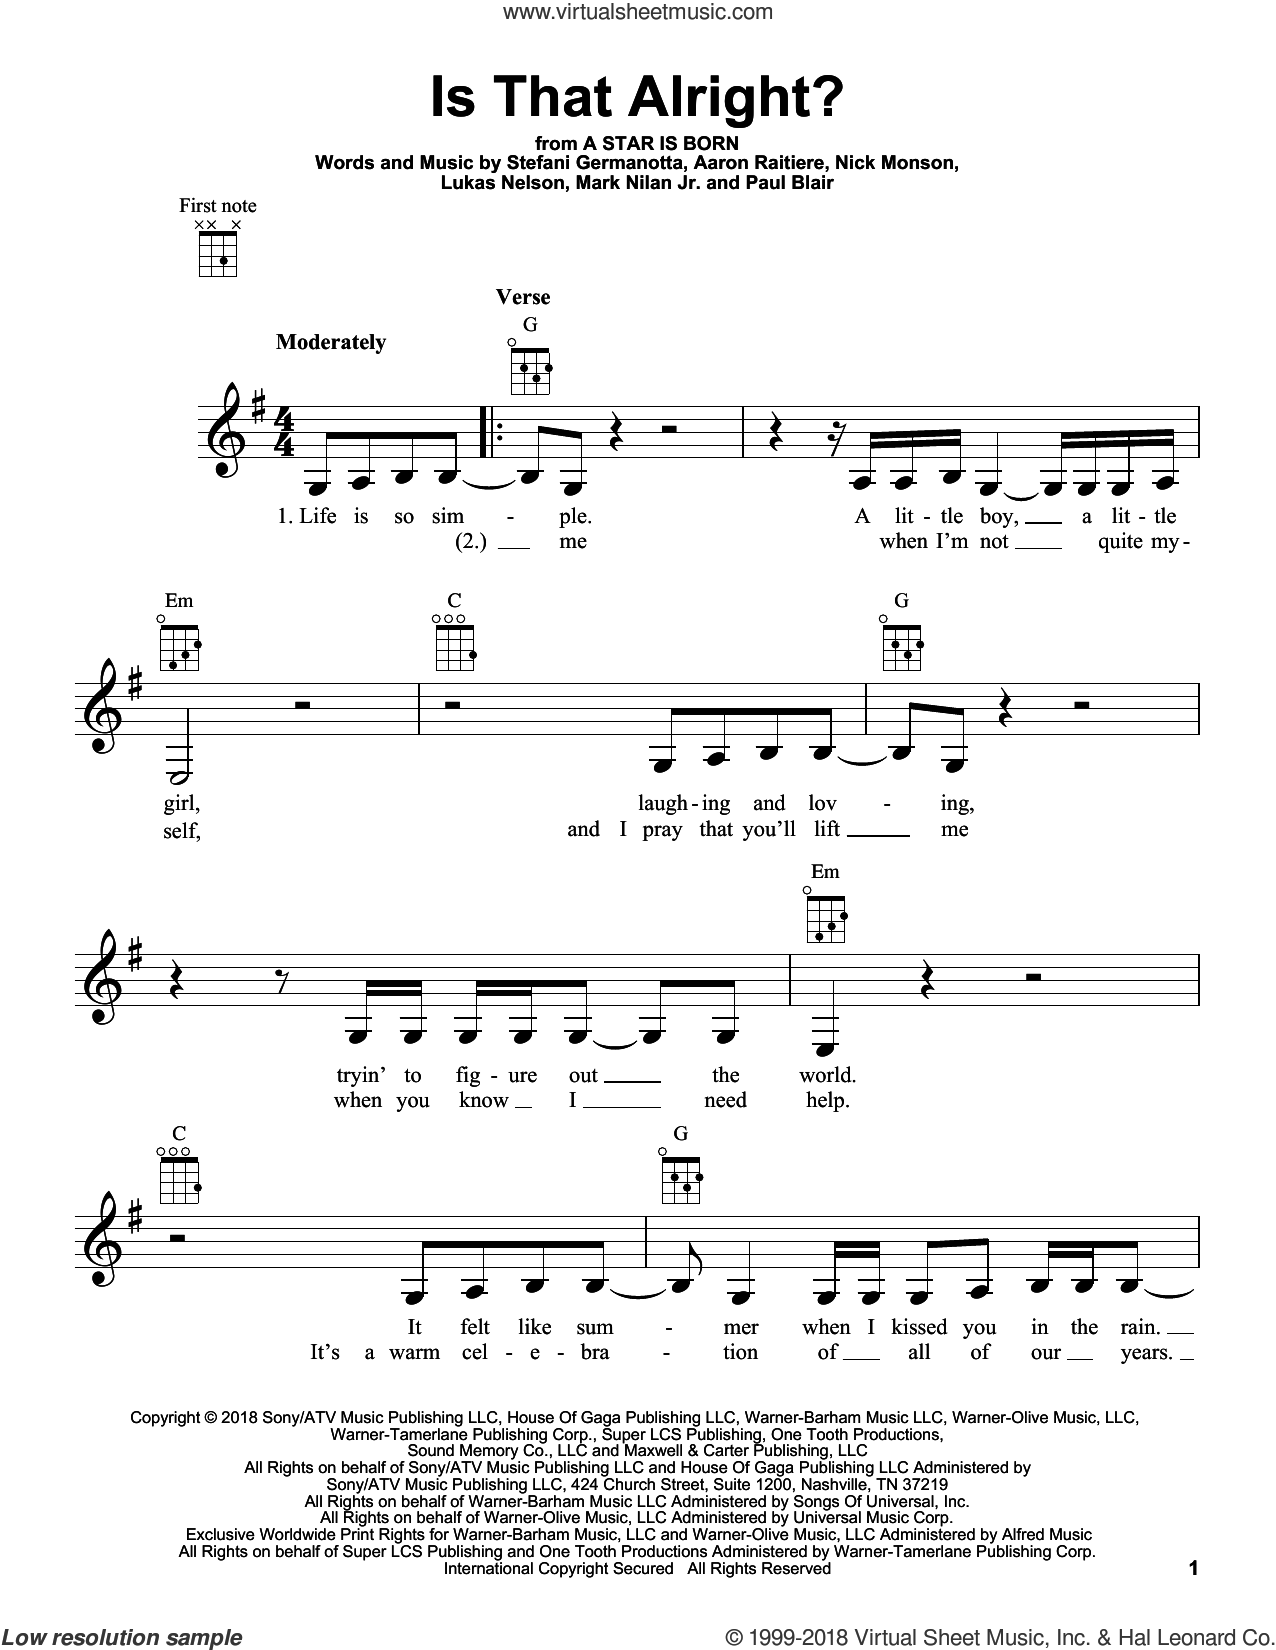 Is That Alright? (from A Star Is Born) sheet music for ukulele by Lady Gaga, Bradley Cooper, Lukas Nelson, Aaron Raitiere, Mark Nilan Jr., Nick Monson and Paul Blair, intermediate skill level